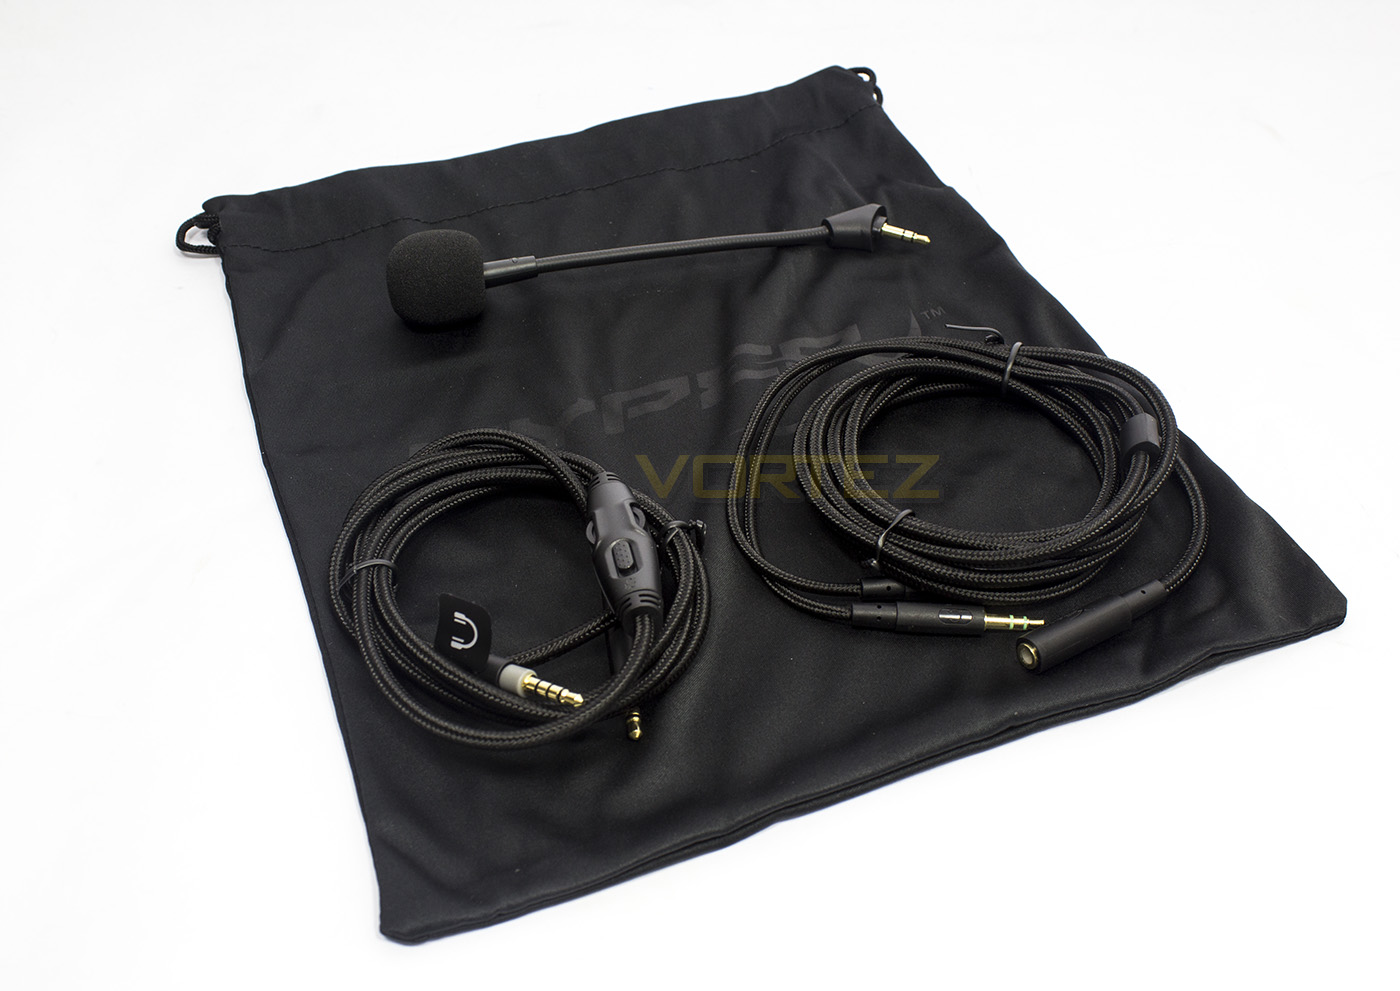 Hyperx Include A Whole Load Of Accessories Including 1 1m Braided Cable With Inline Remote And 4pole Connector 2m Audio Microphone Splitter Again